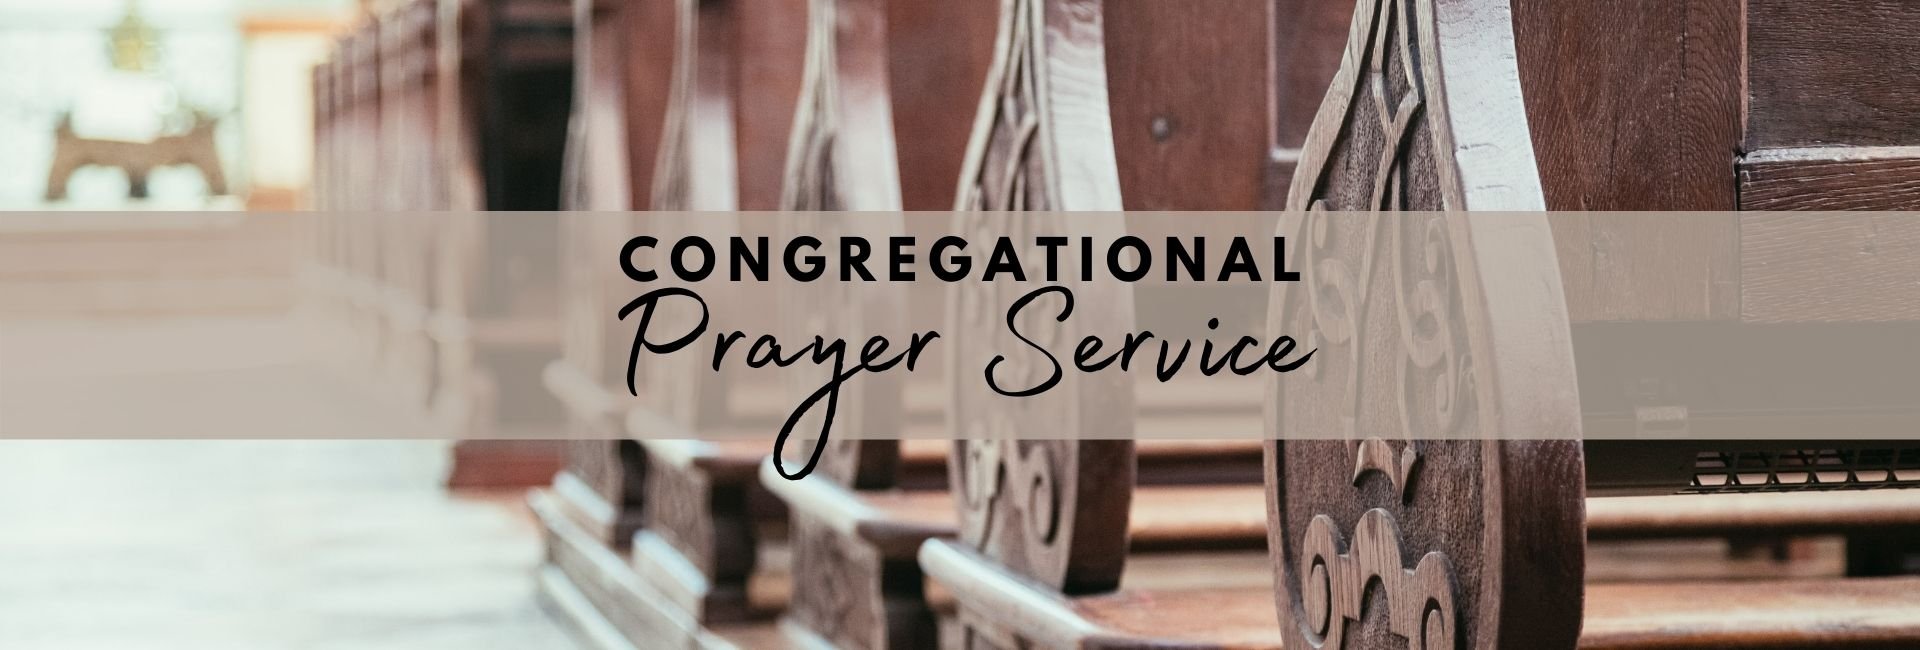 Congregational Prayer Service 7 Web